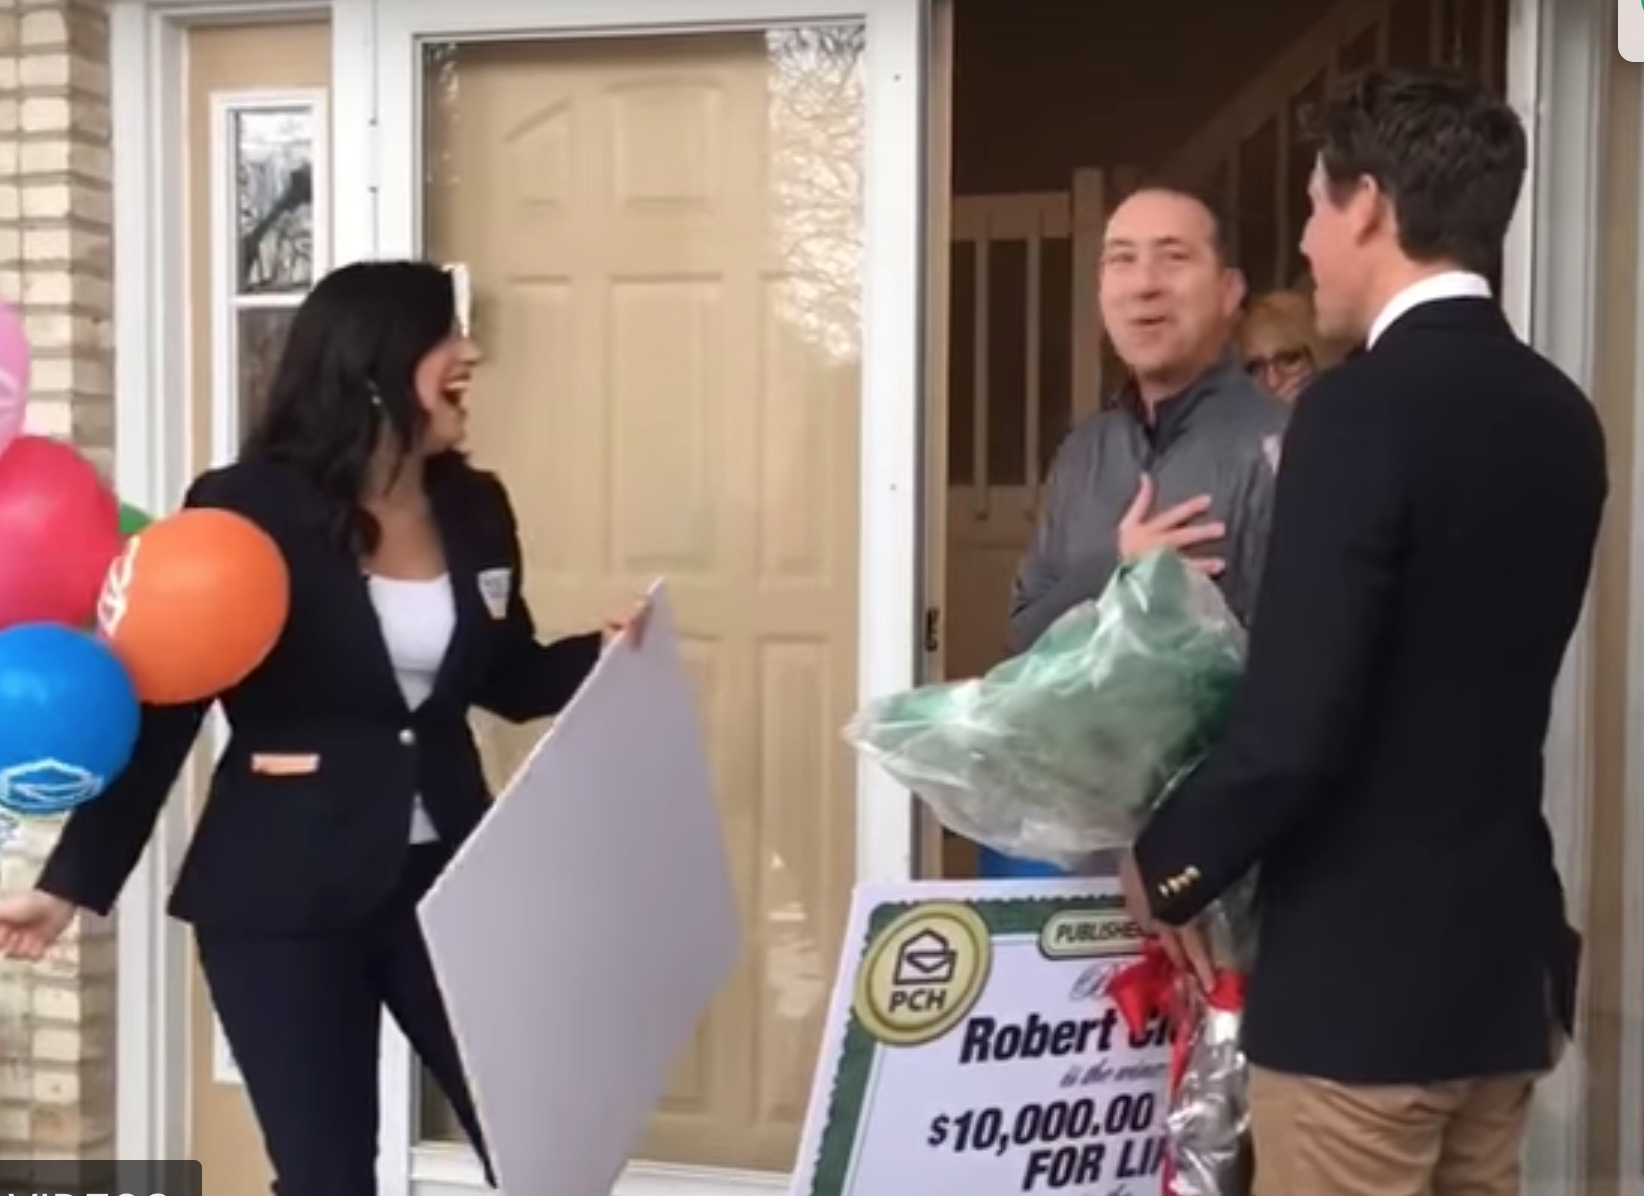 OMGSweeps - Kirtland man wins thousands from Publishers Clearing House